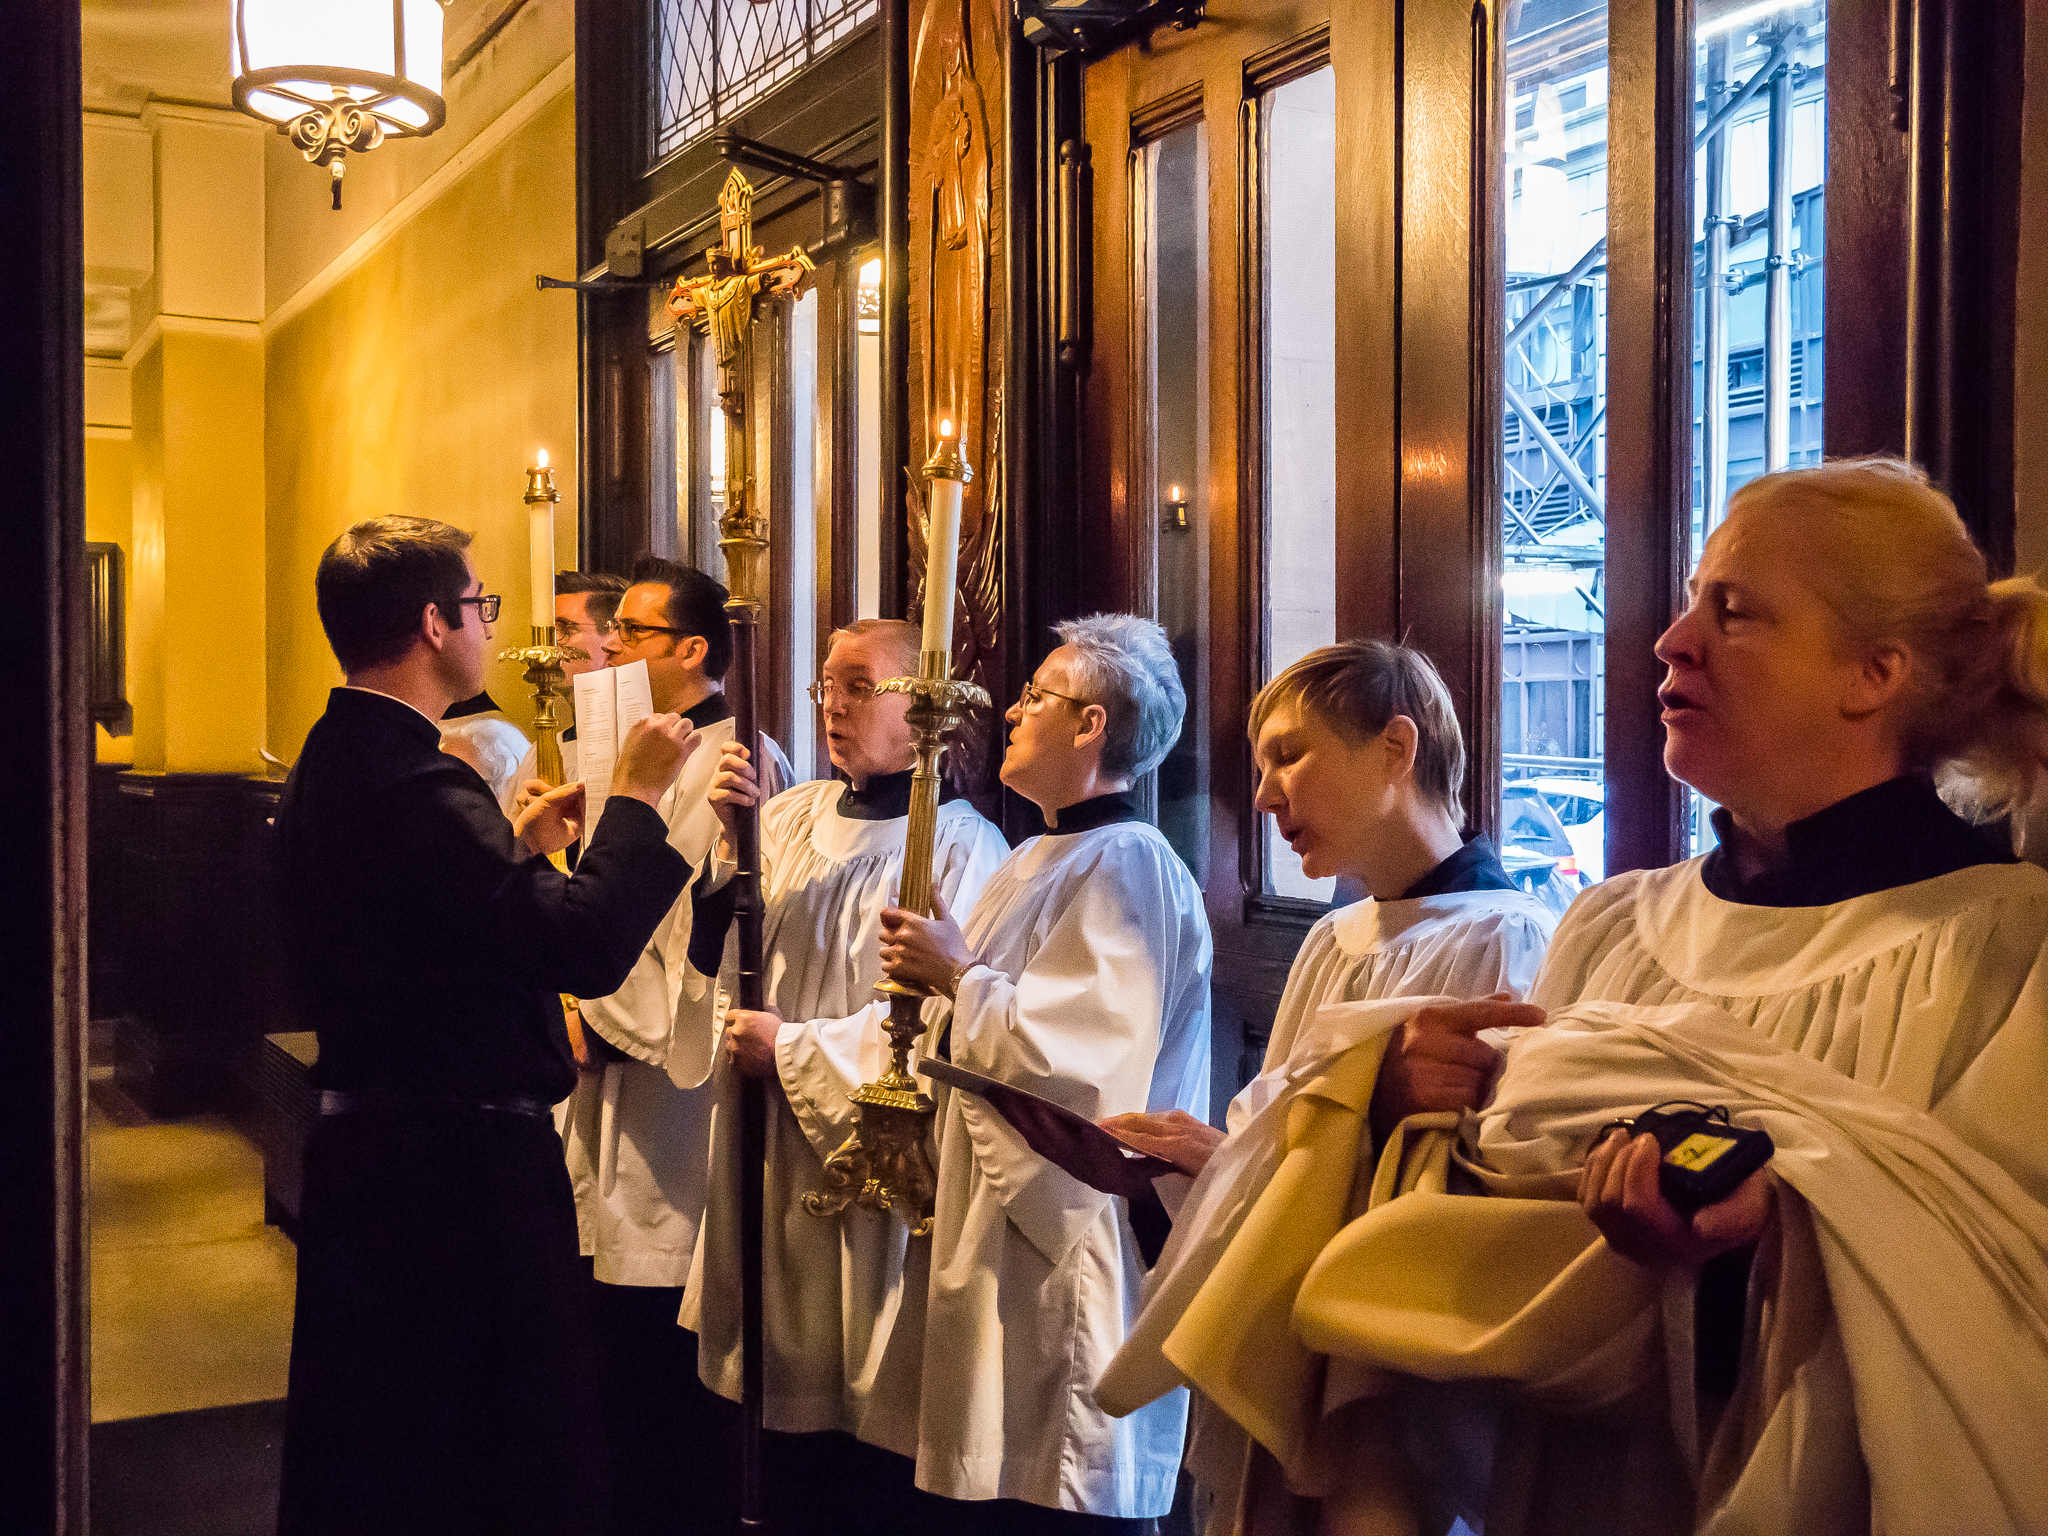 Servers and clergy, as a sign of their service, do not carry bulletins during processions; but they still like to sing. Father Jacobson assists after removing his vestments.  Photo by Ricardo Gomez